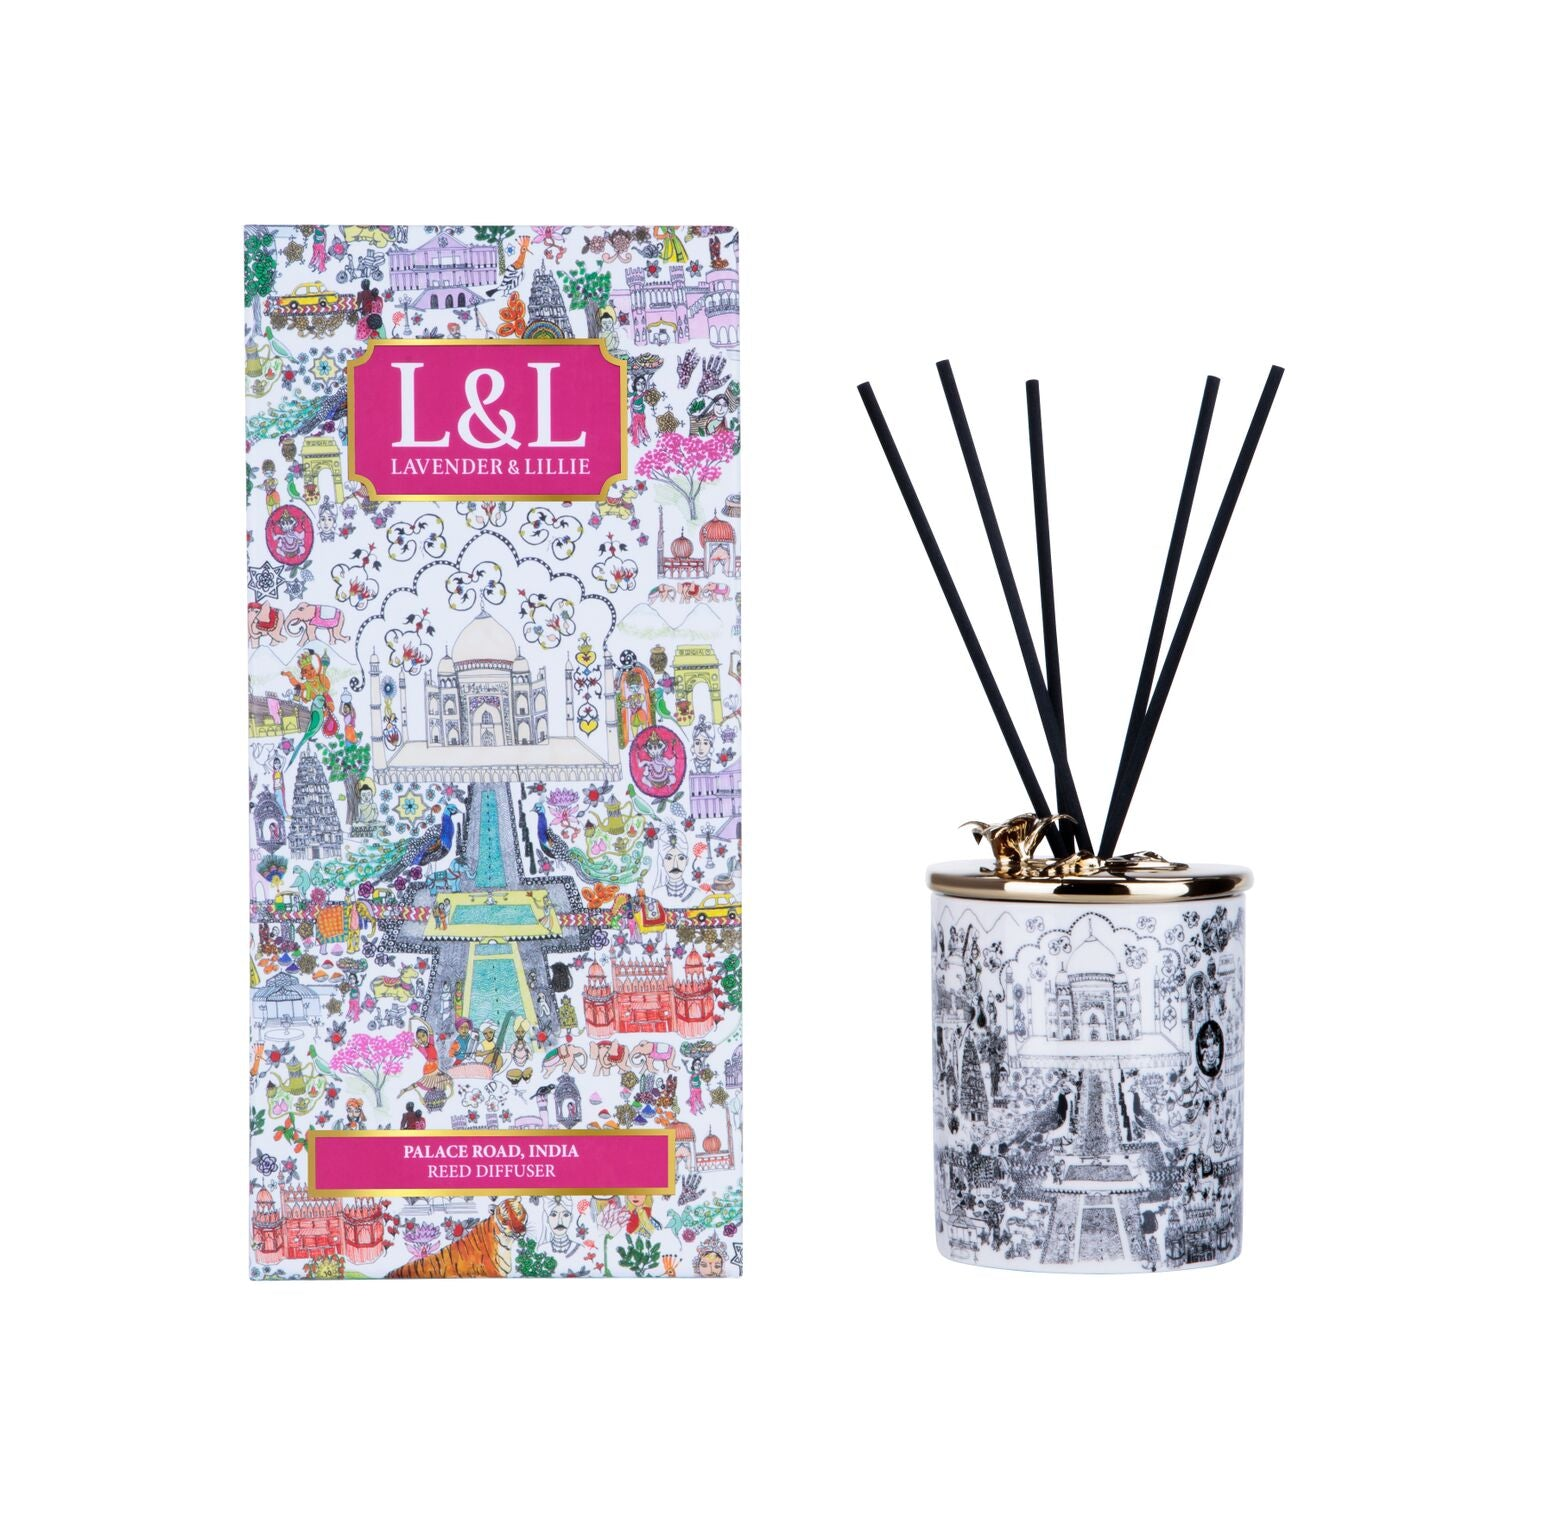 Palace Road, India Porcelain Reed Diffuser - Shopidpearl